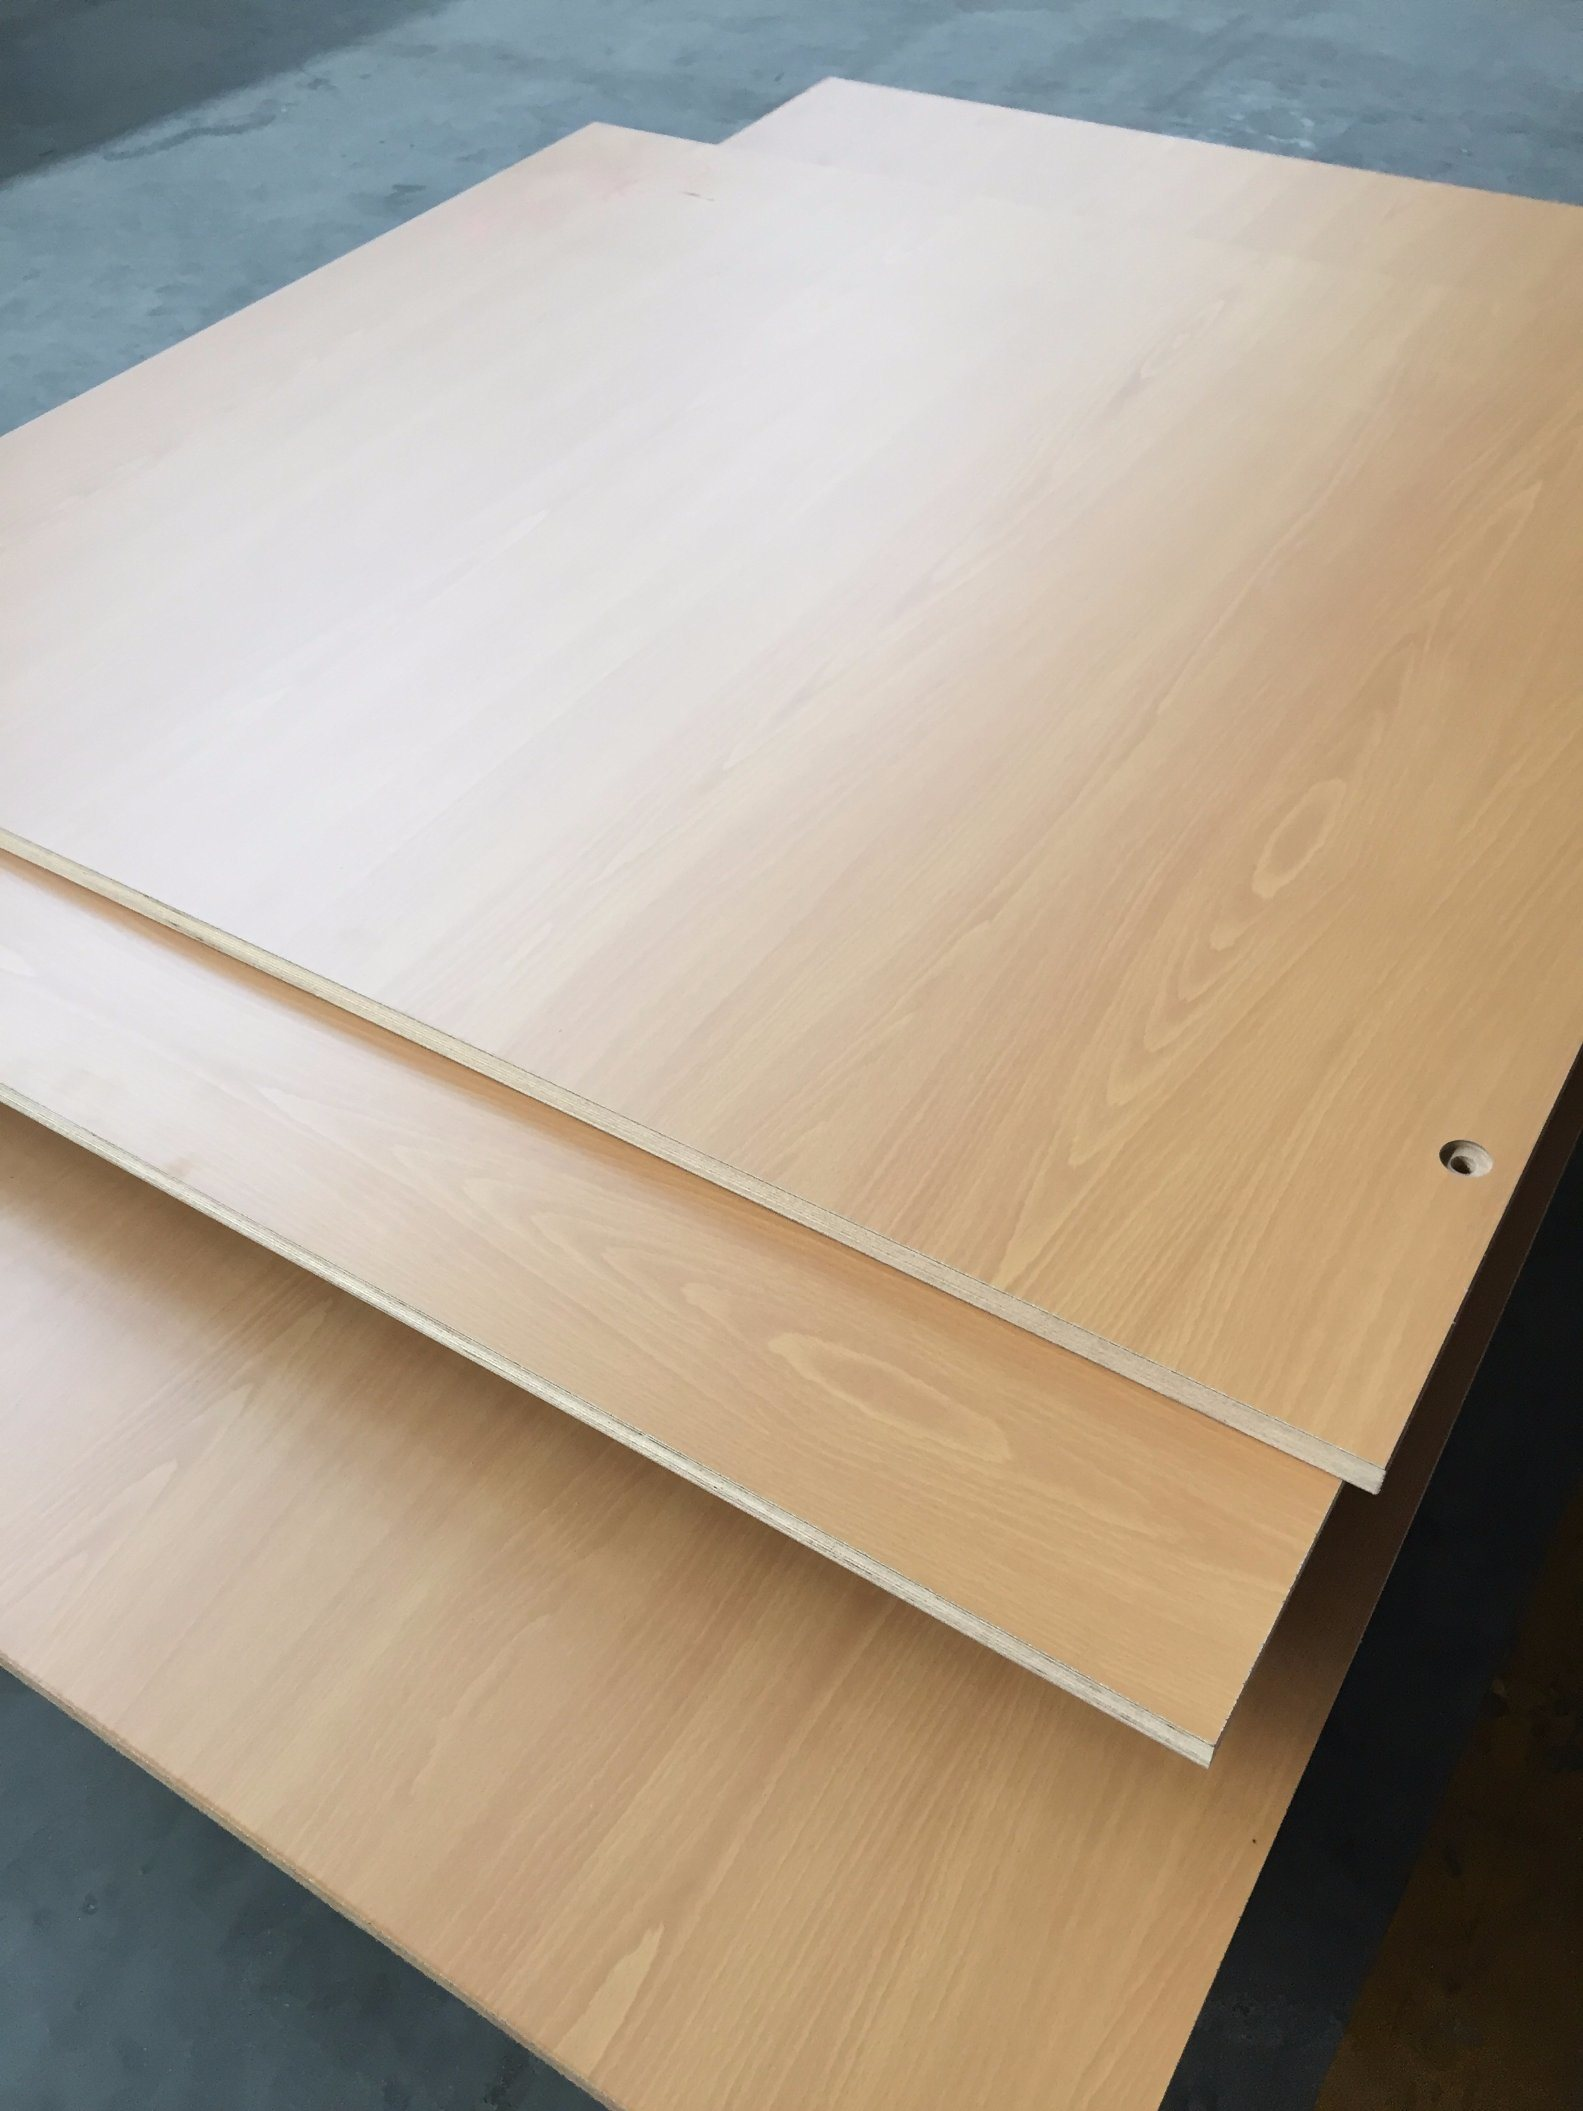 Captivating China Supplier Cheap Price Merine Plywood 9mm Birch Core Film Faced Plywood  Mr Glue Red Hardwood   China Mr Glue, Supplier Plywood